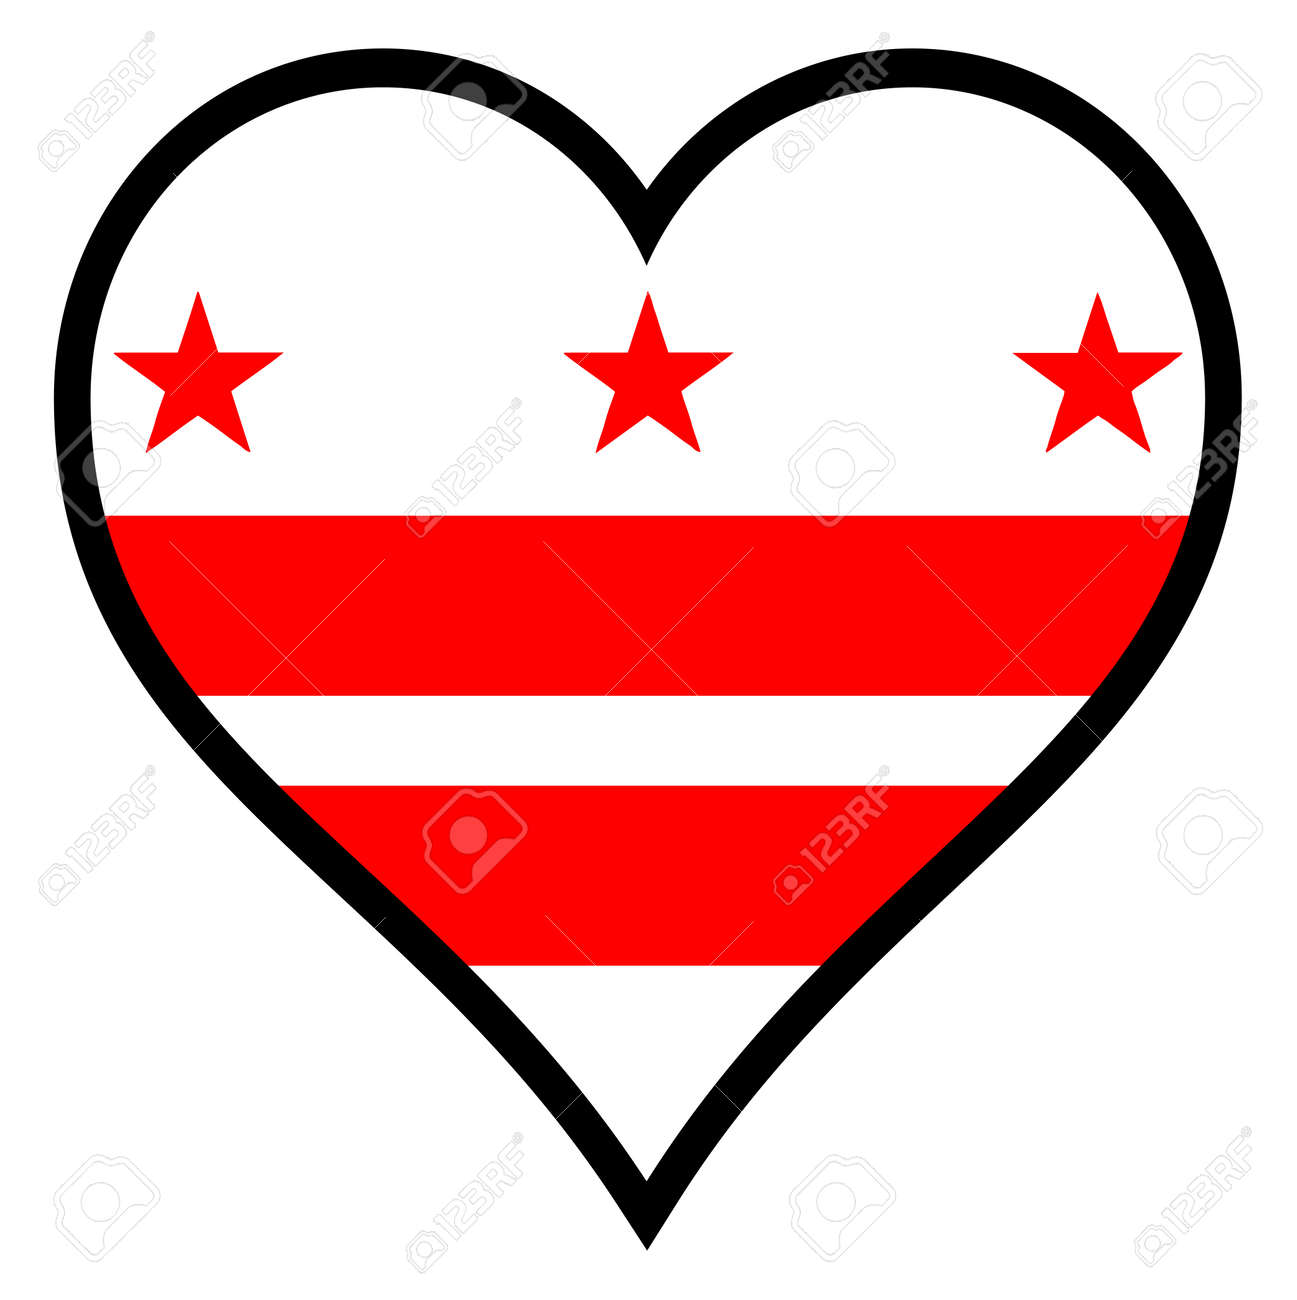 Washington dc flag within a heart all over a white background washington dc flag within a heart all over a white background stock vector 34480611 biocorpaavc Images